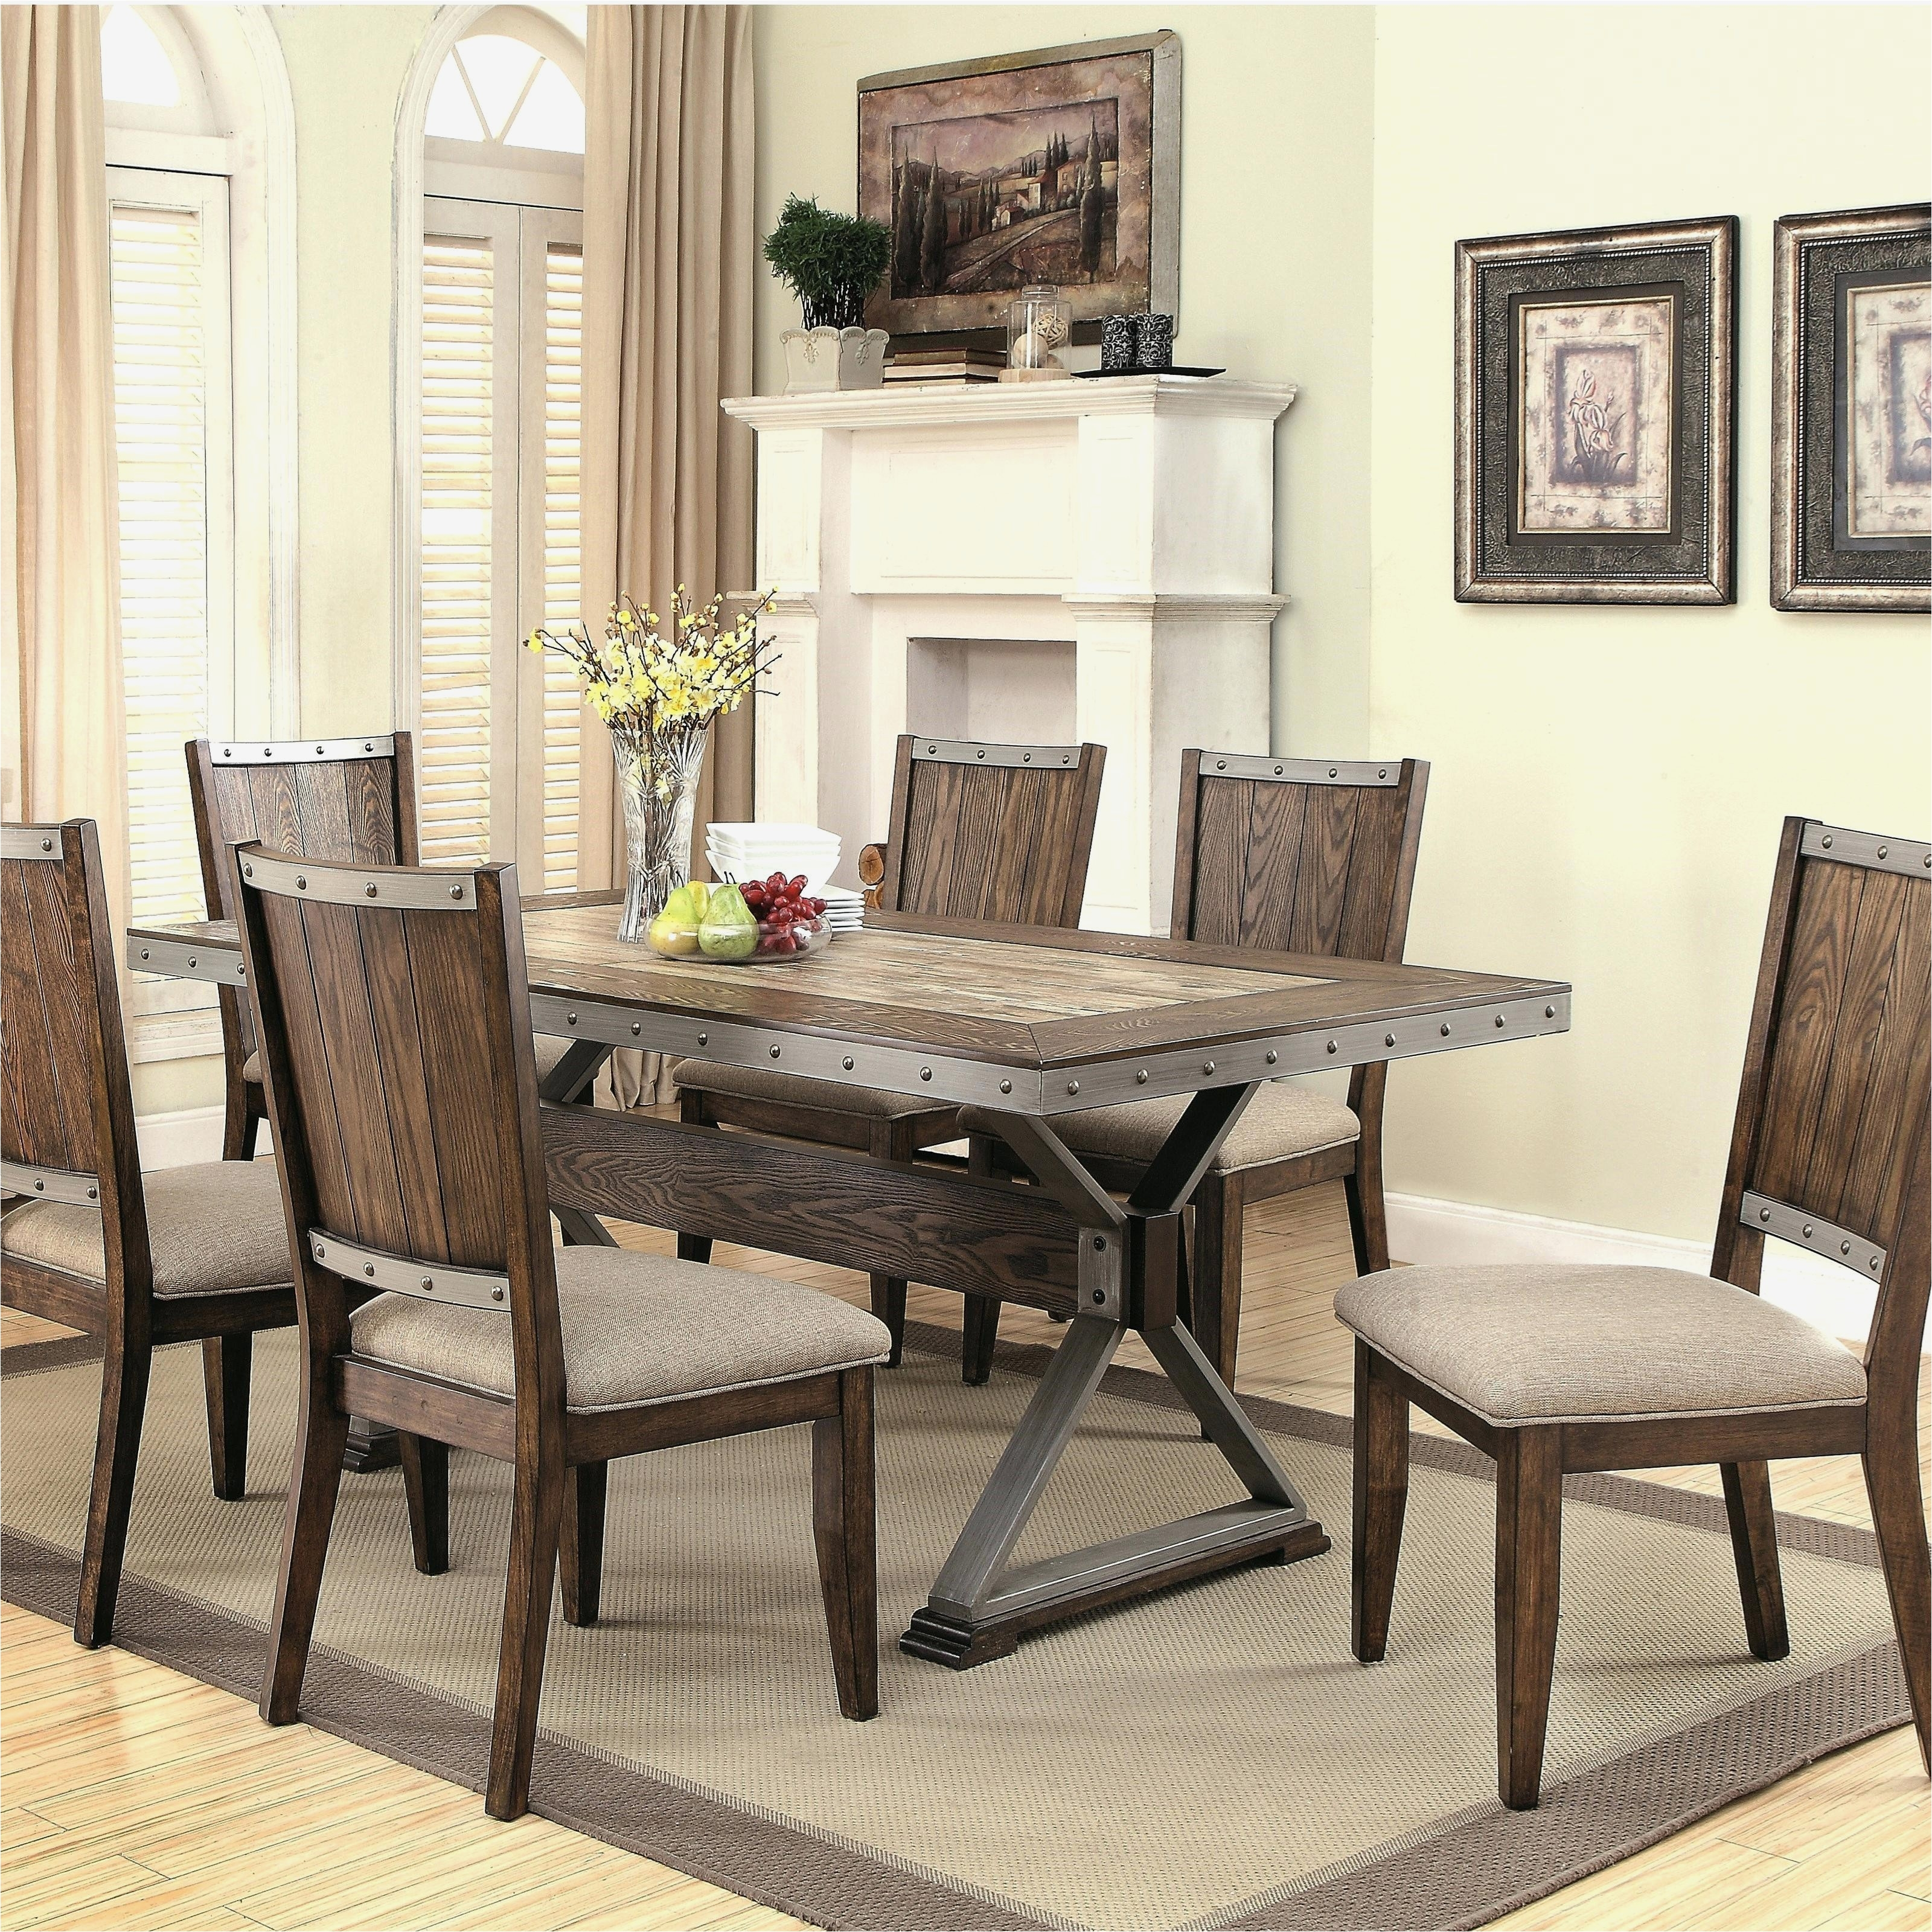 rustic dining room furniture inspirational 20 amazing rustic dining table with bench stampler pics of 44